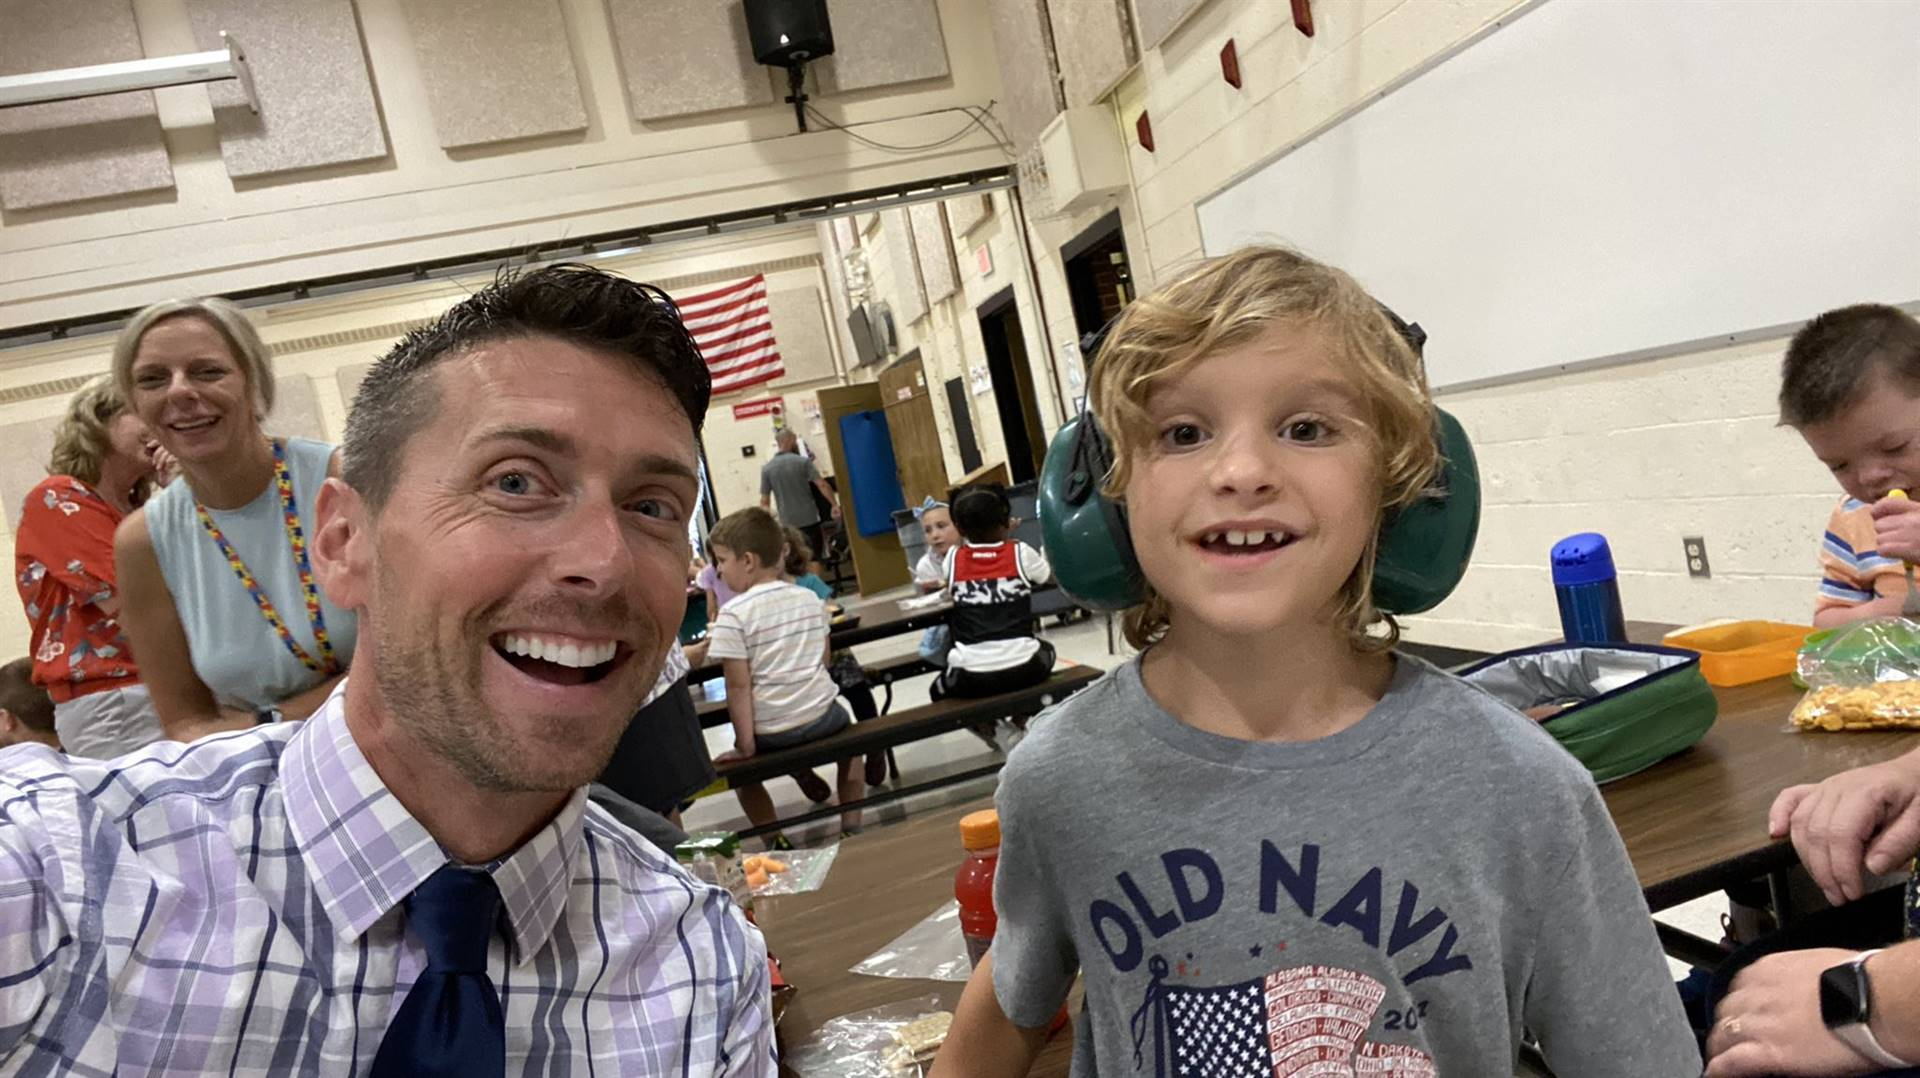 Photo 23:  Munson Principal Prezioso with a student in the lunch room - both smiling for the camera